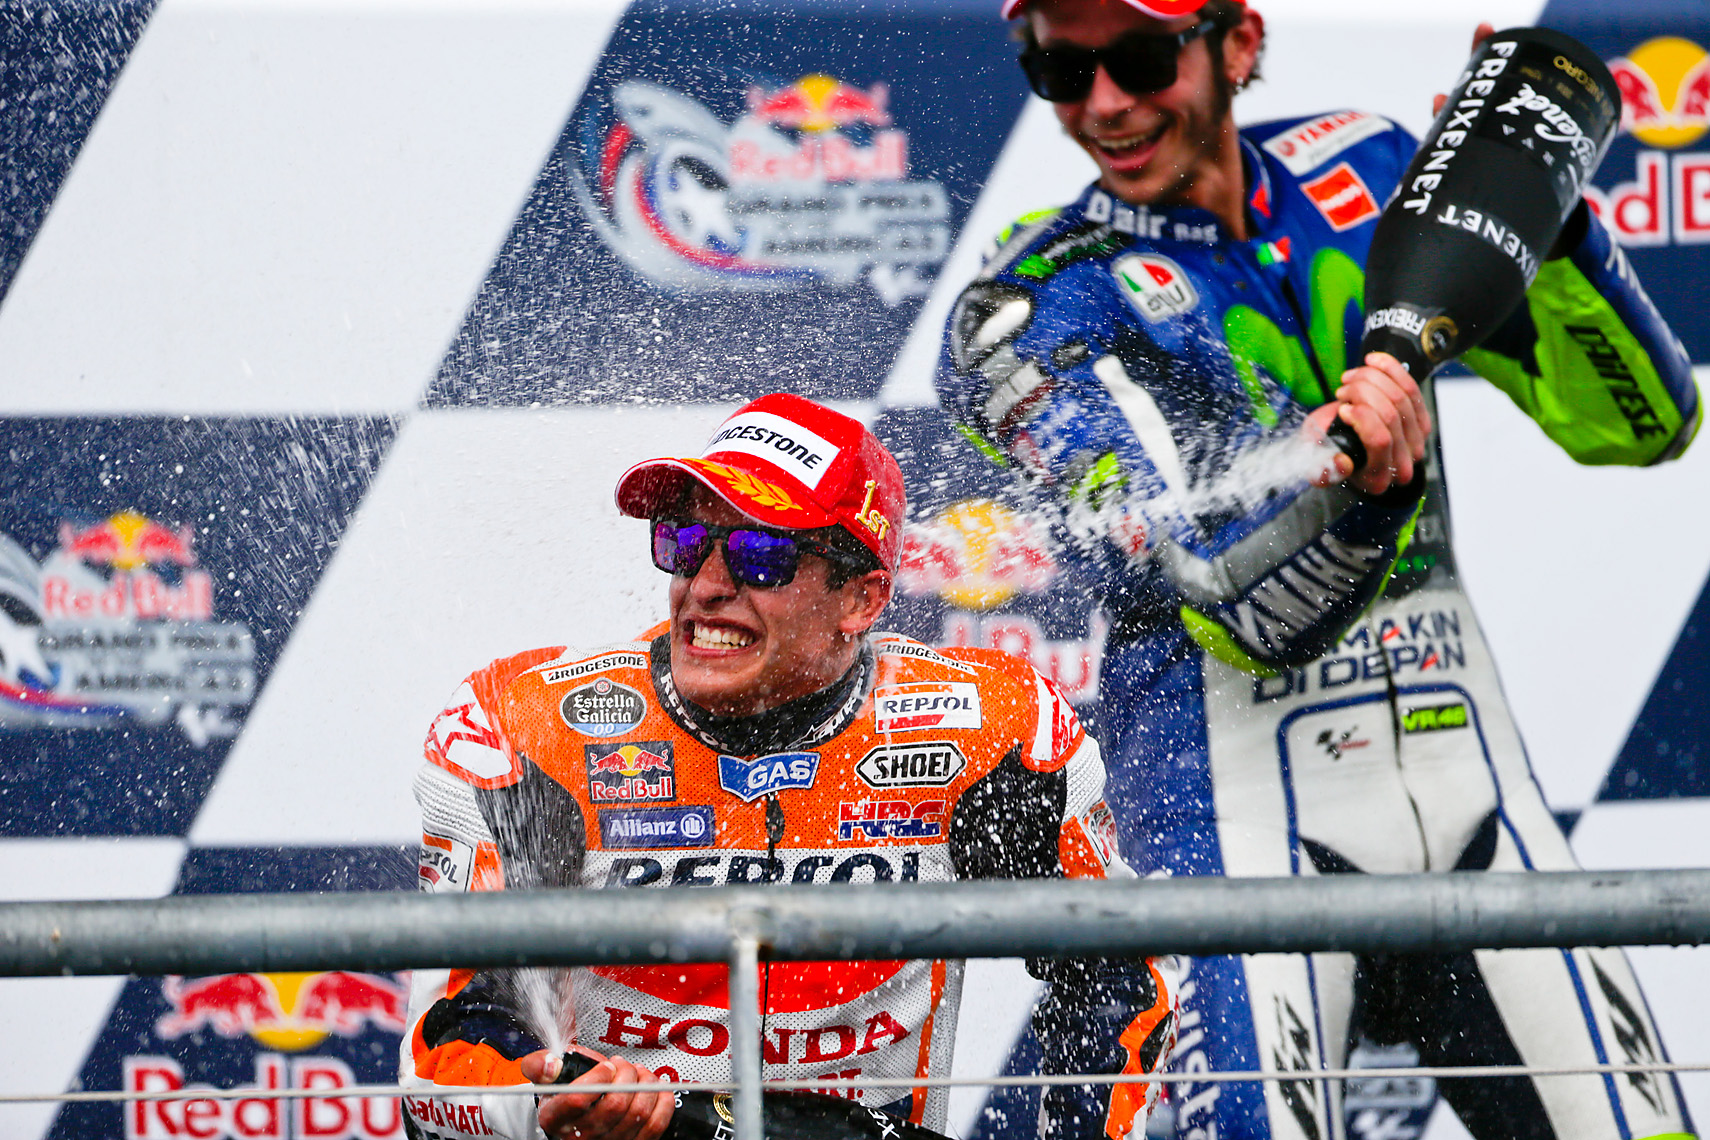 MotoGP 2015 at Circuit of the Americas, Austin Texas April 8-12